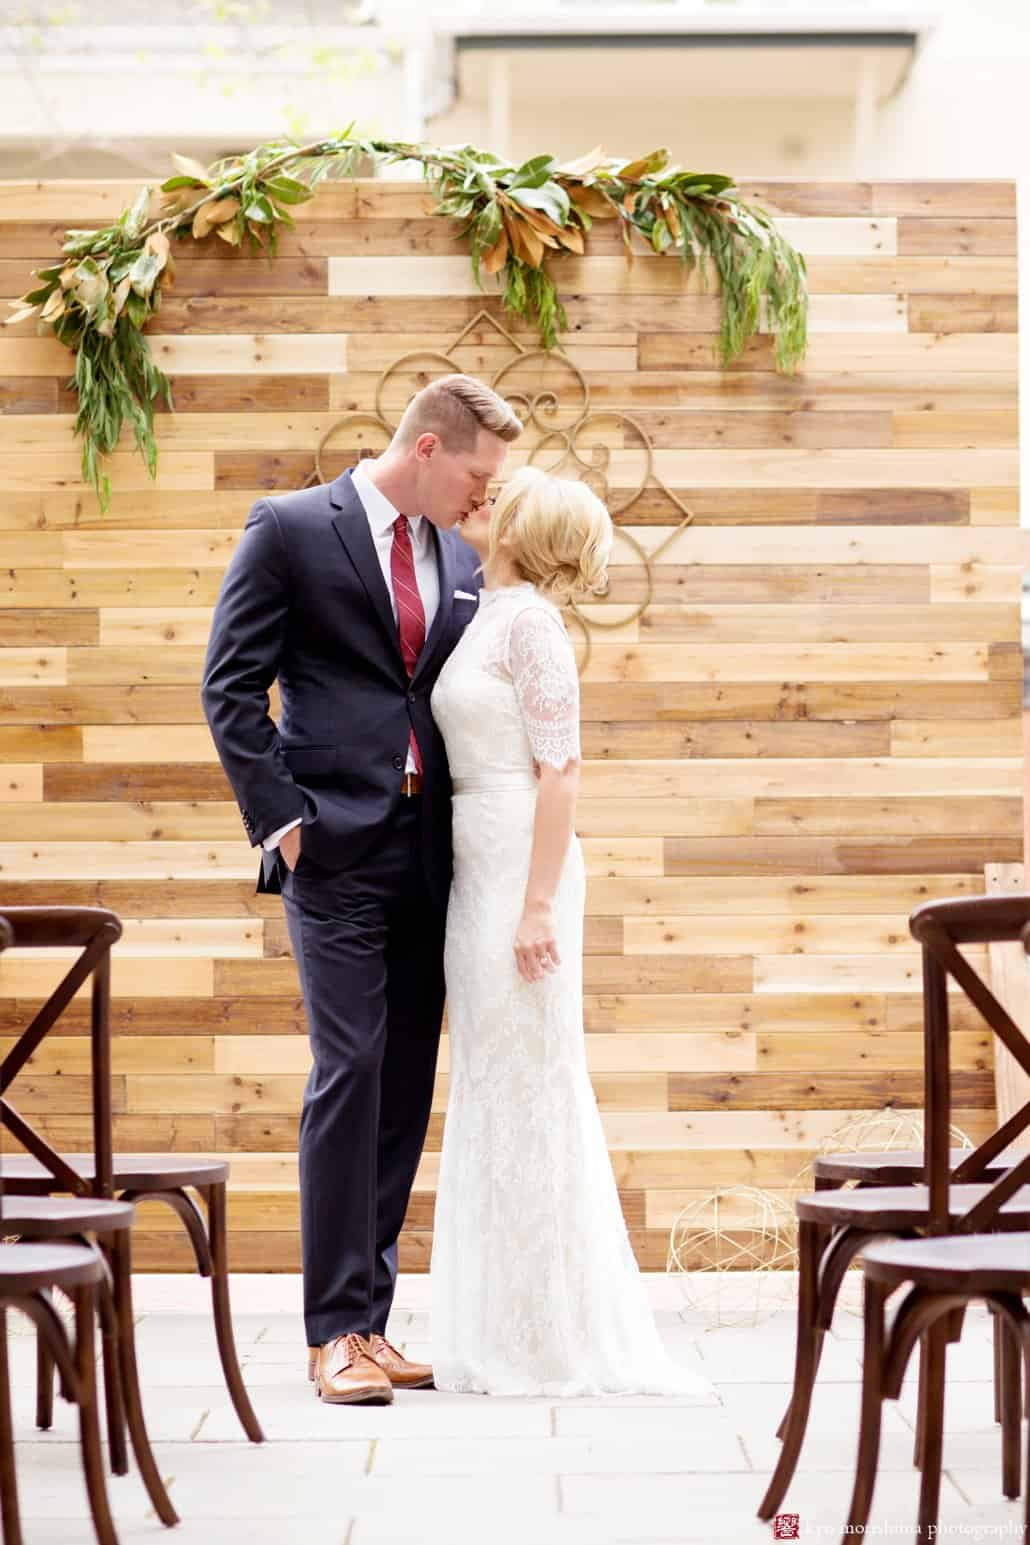 """Bride and groom on the patio at Nassau Inn """"Madmen"""" wedding shoot styled by Kristin Rockhill of Details of I Do; bride wears BHLDN Bridgette dress with hair by Letitia Kakas and makeup by Gina Verde Longo, photographed by Kyo Morishima"""